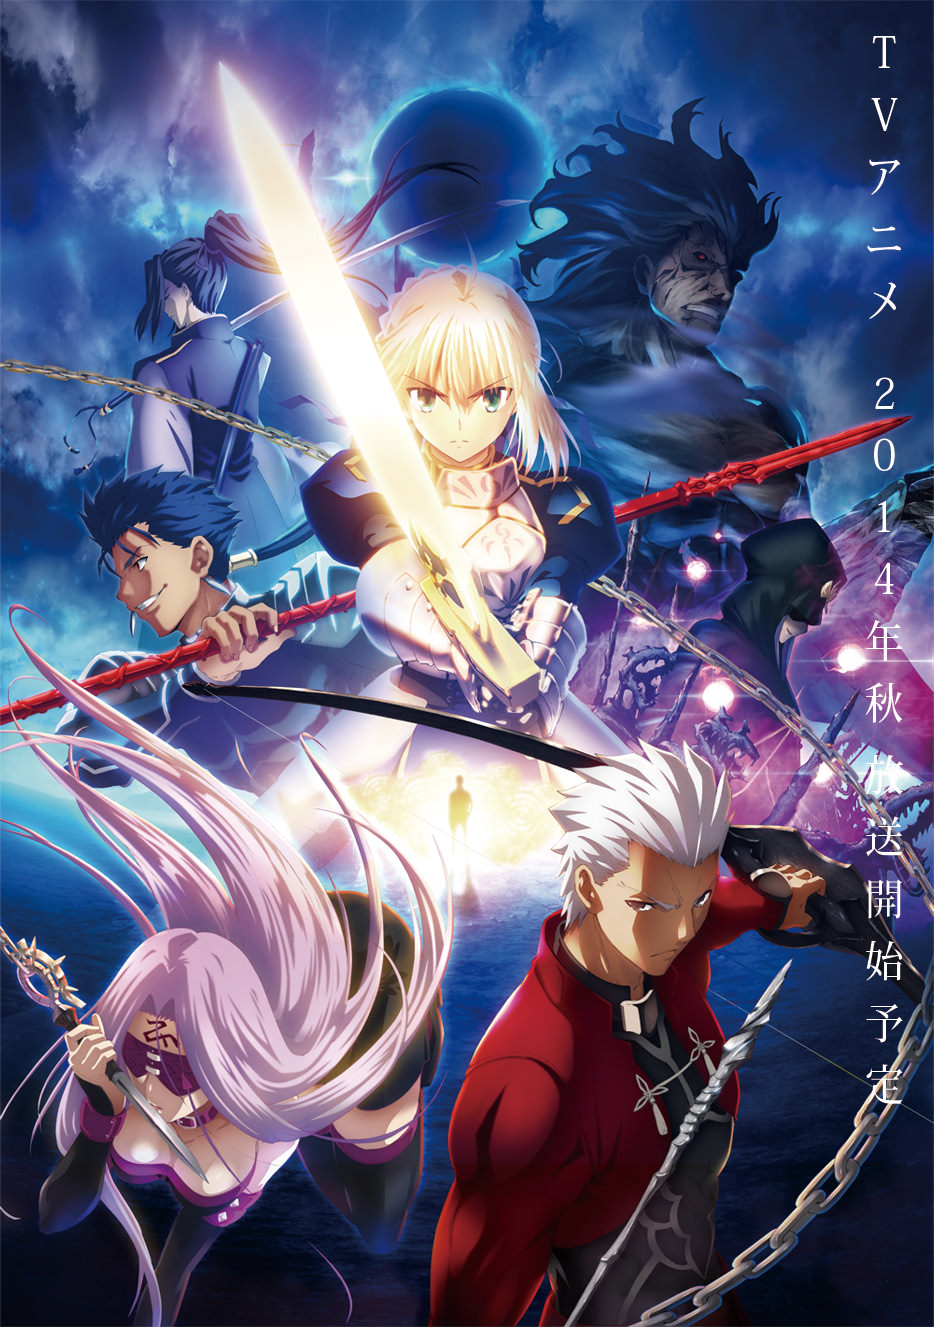 Fate/stay night TV reboot in Autumn 2014